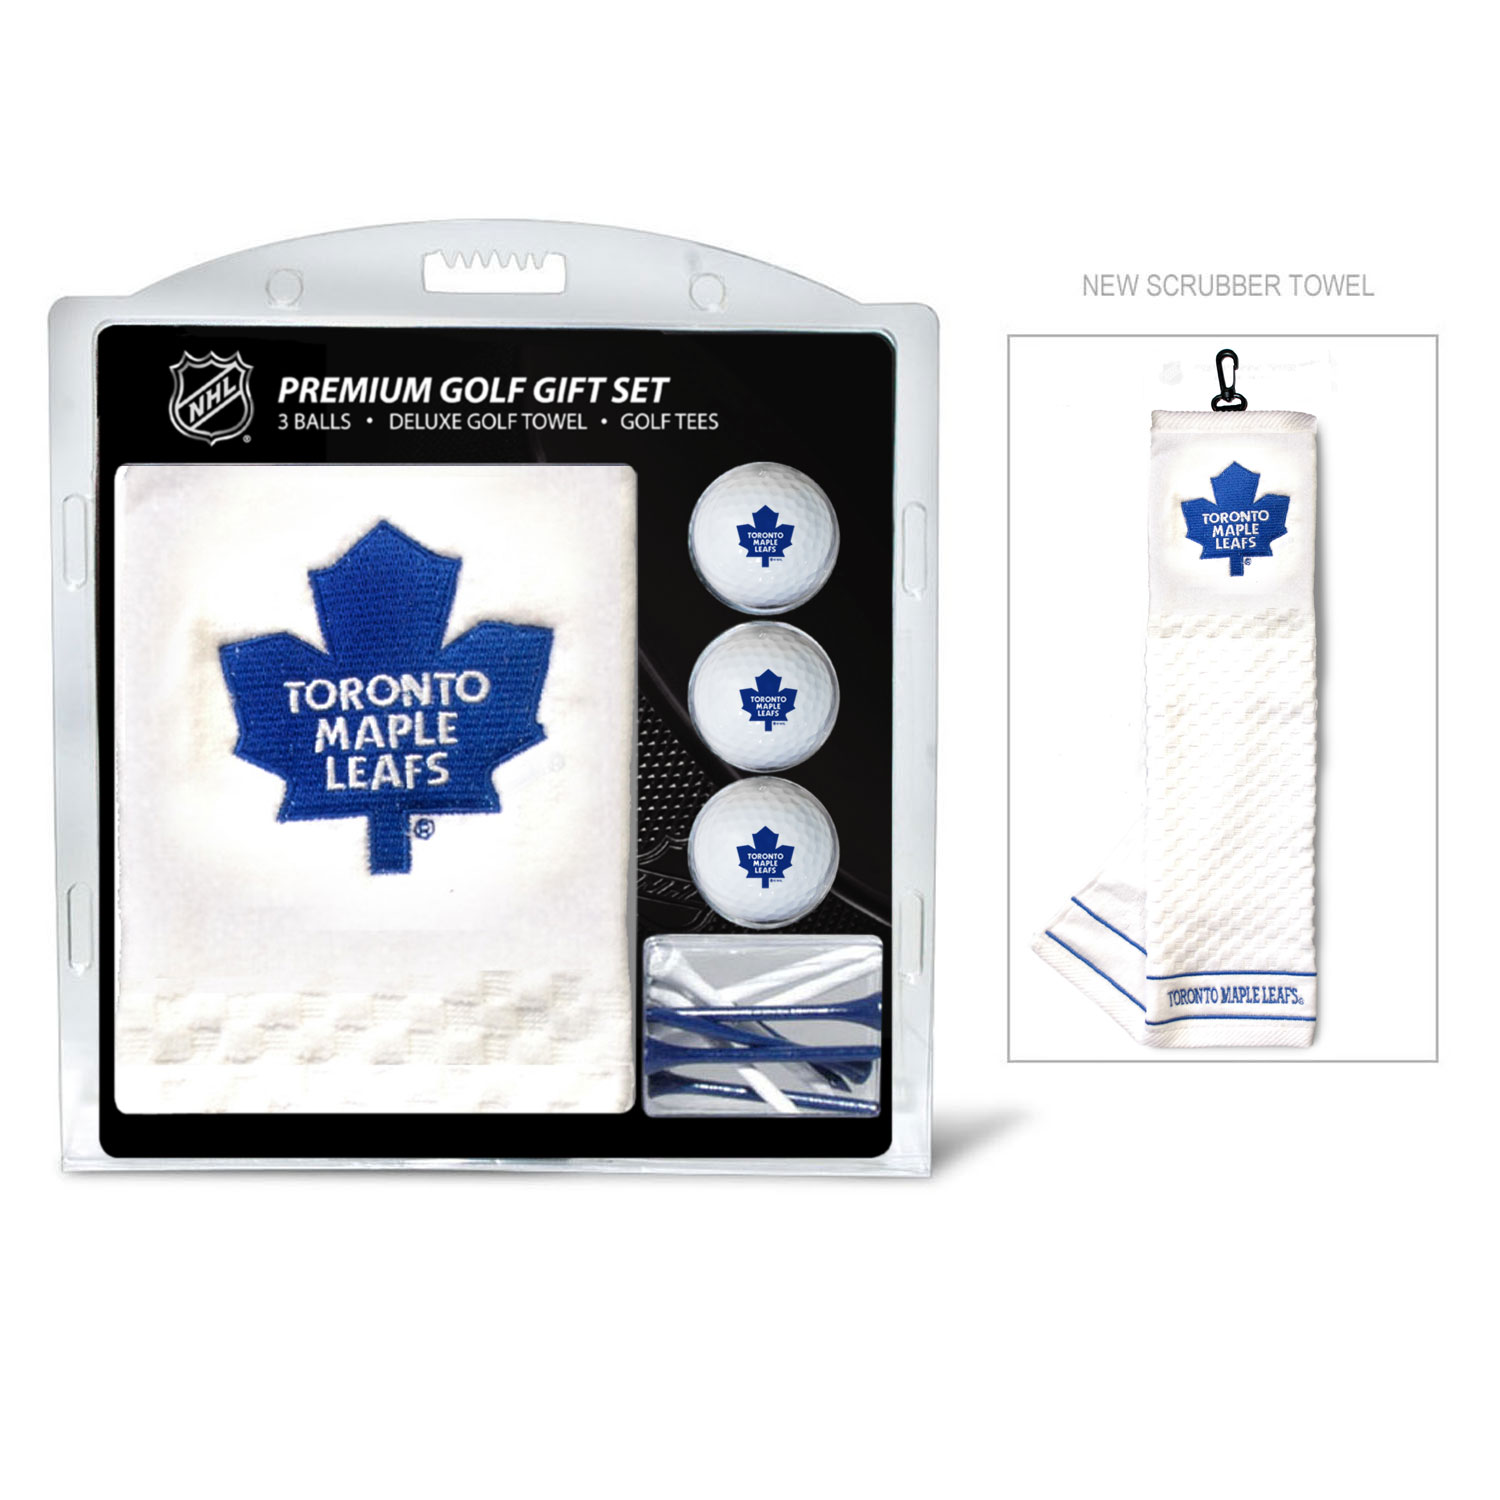 Toronto maple leafs embroidered golf gift set